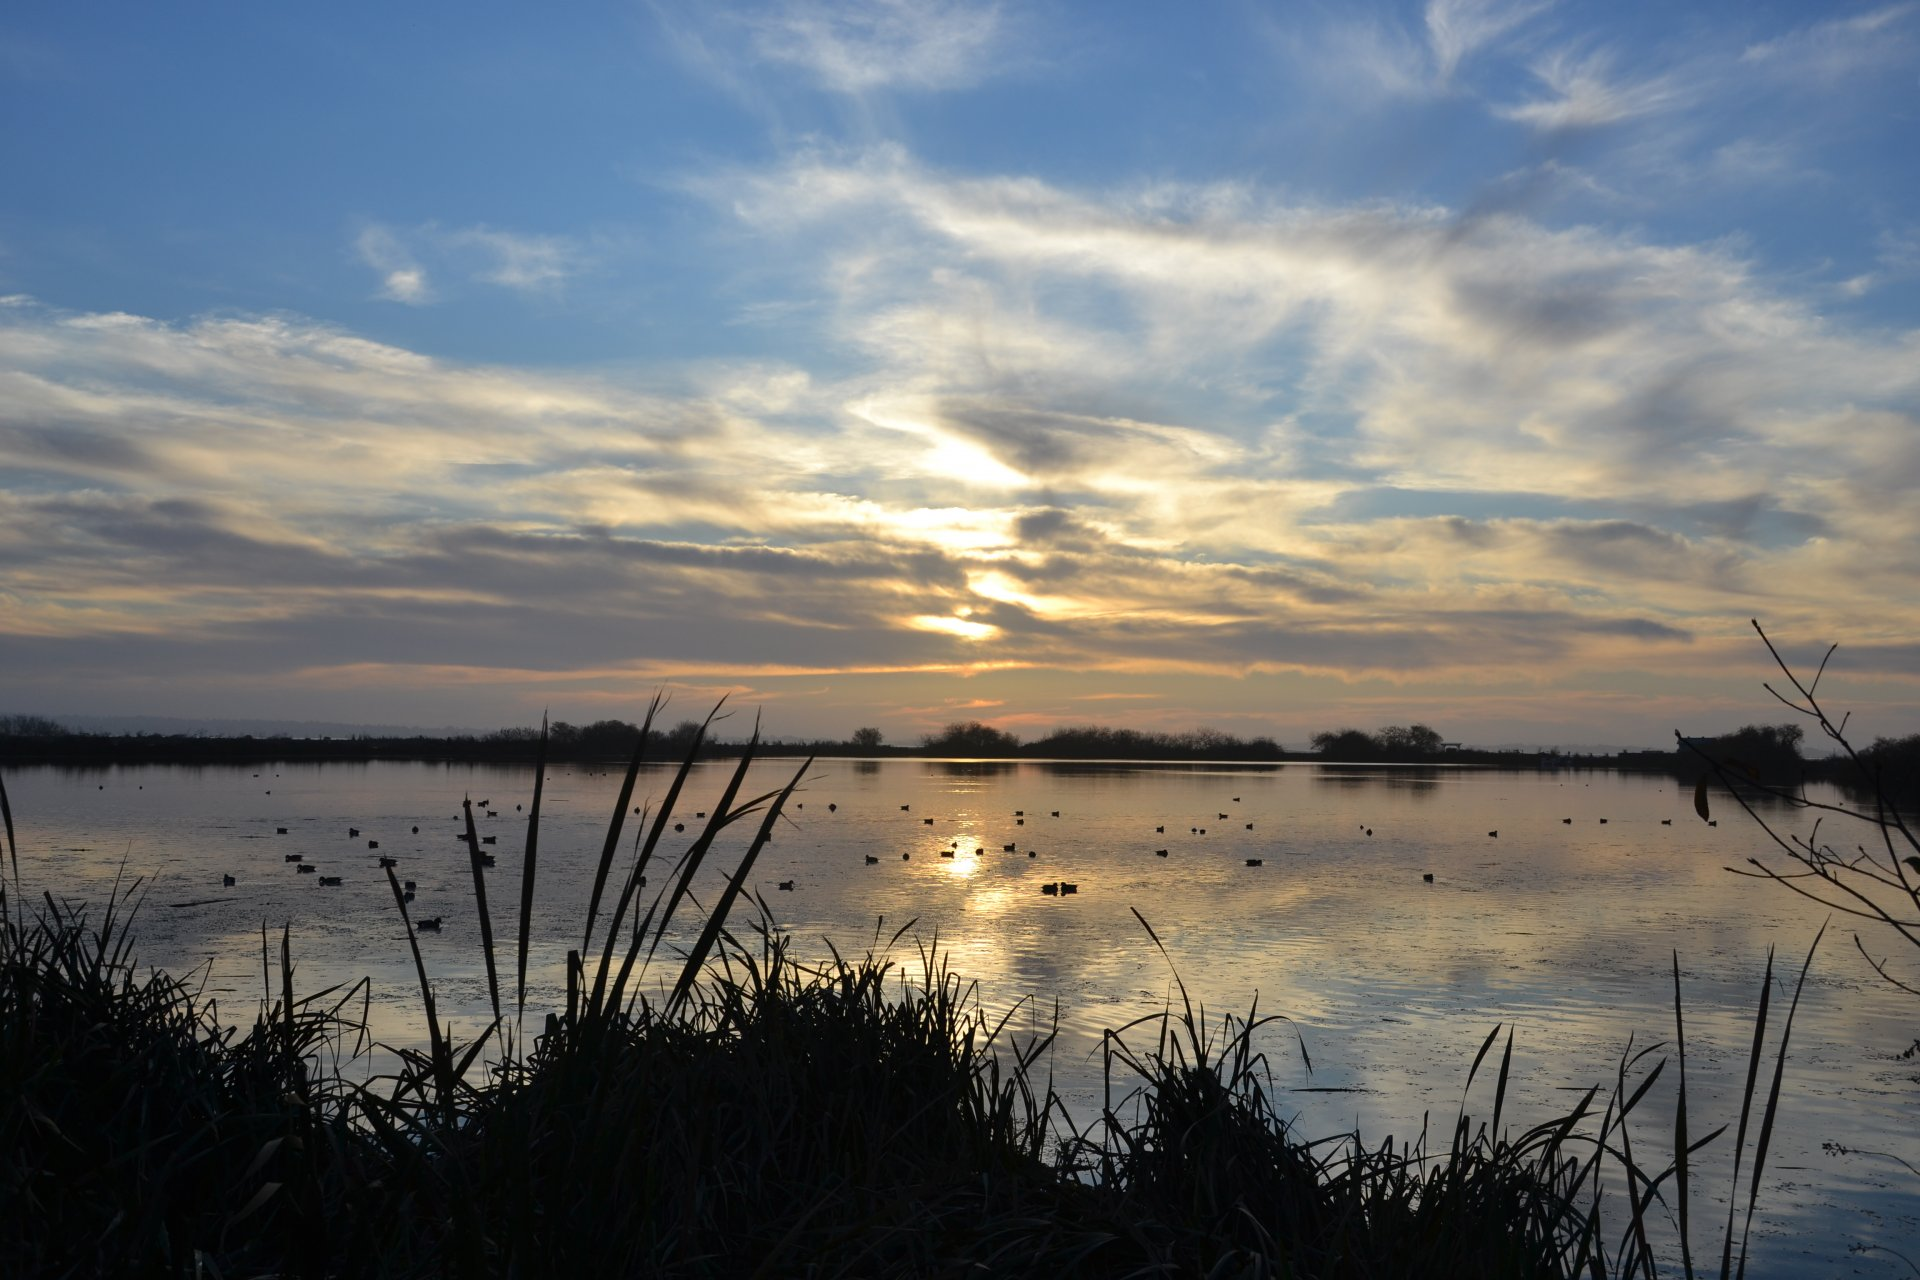 Shoebirds foraging on the Humboldt Bay mudflats at sunset on Dec. 1, 2020   Photo by Jen Kelly